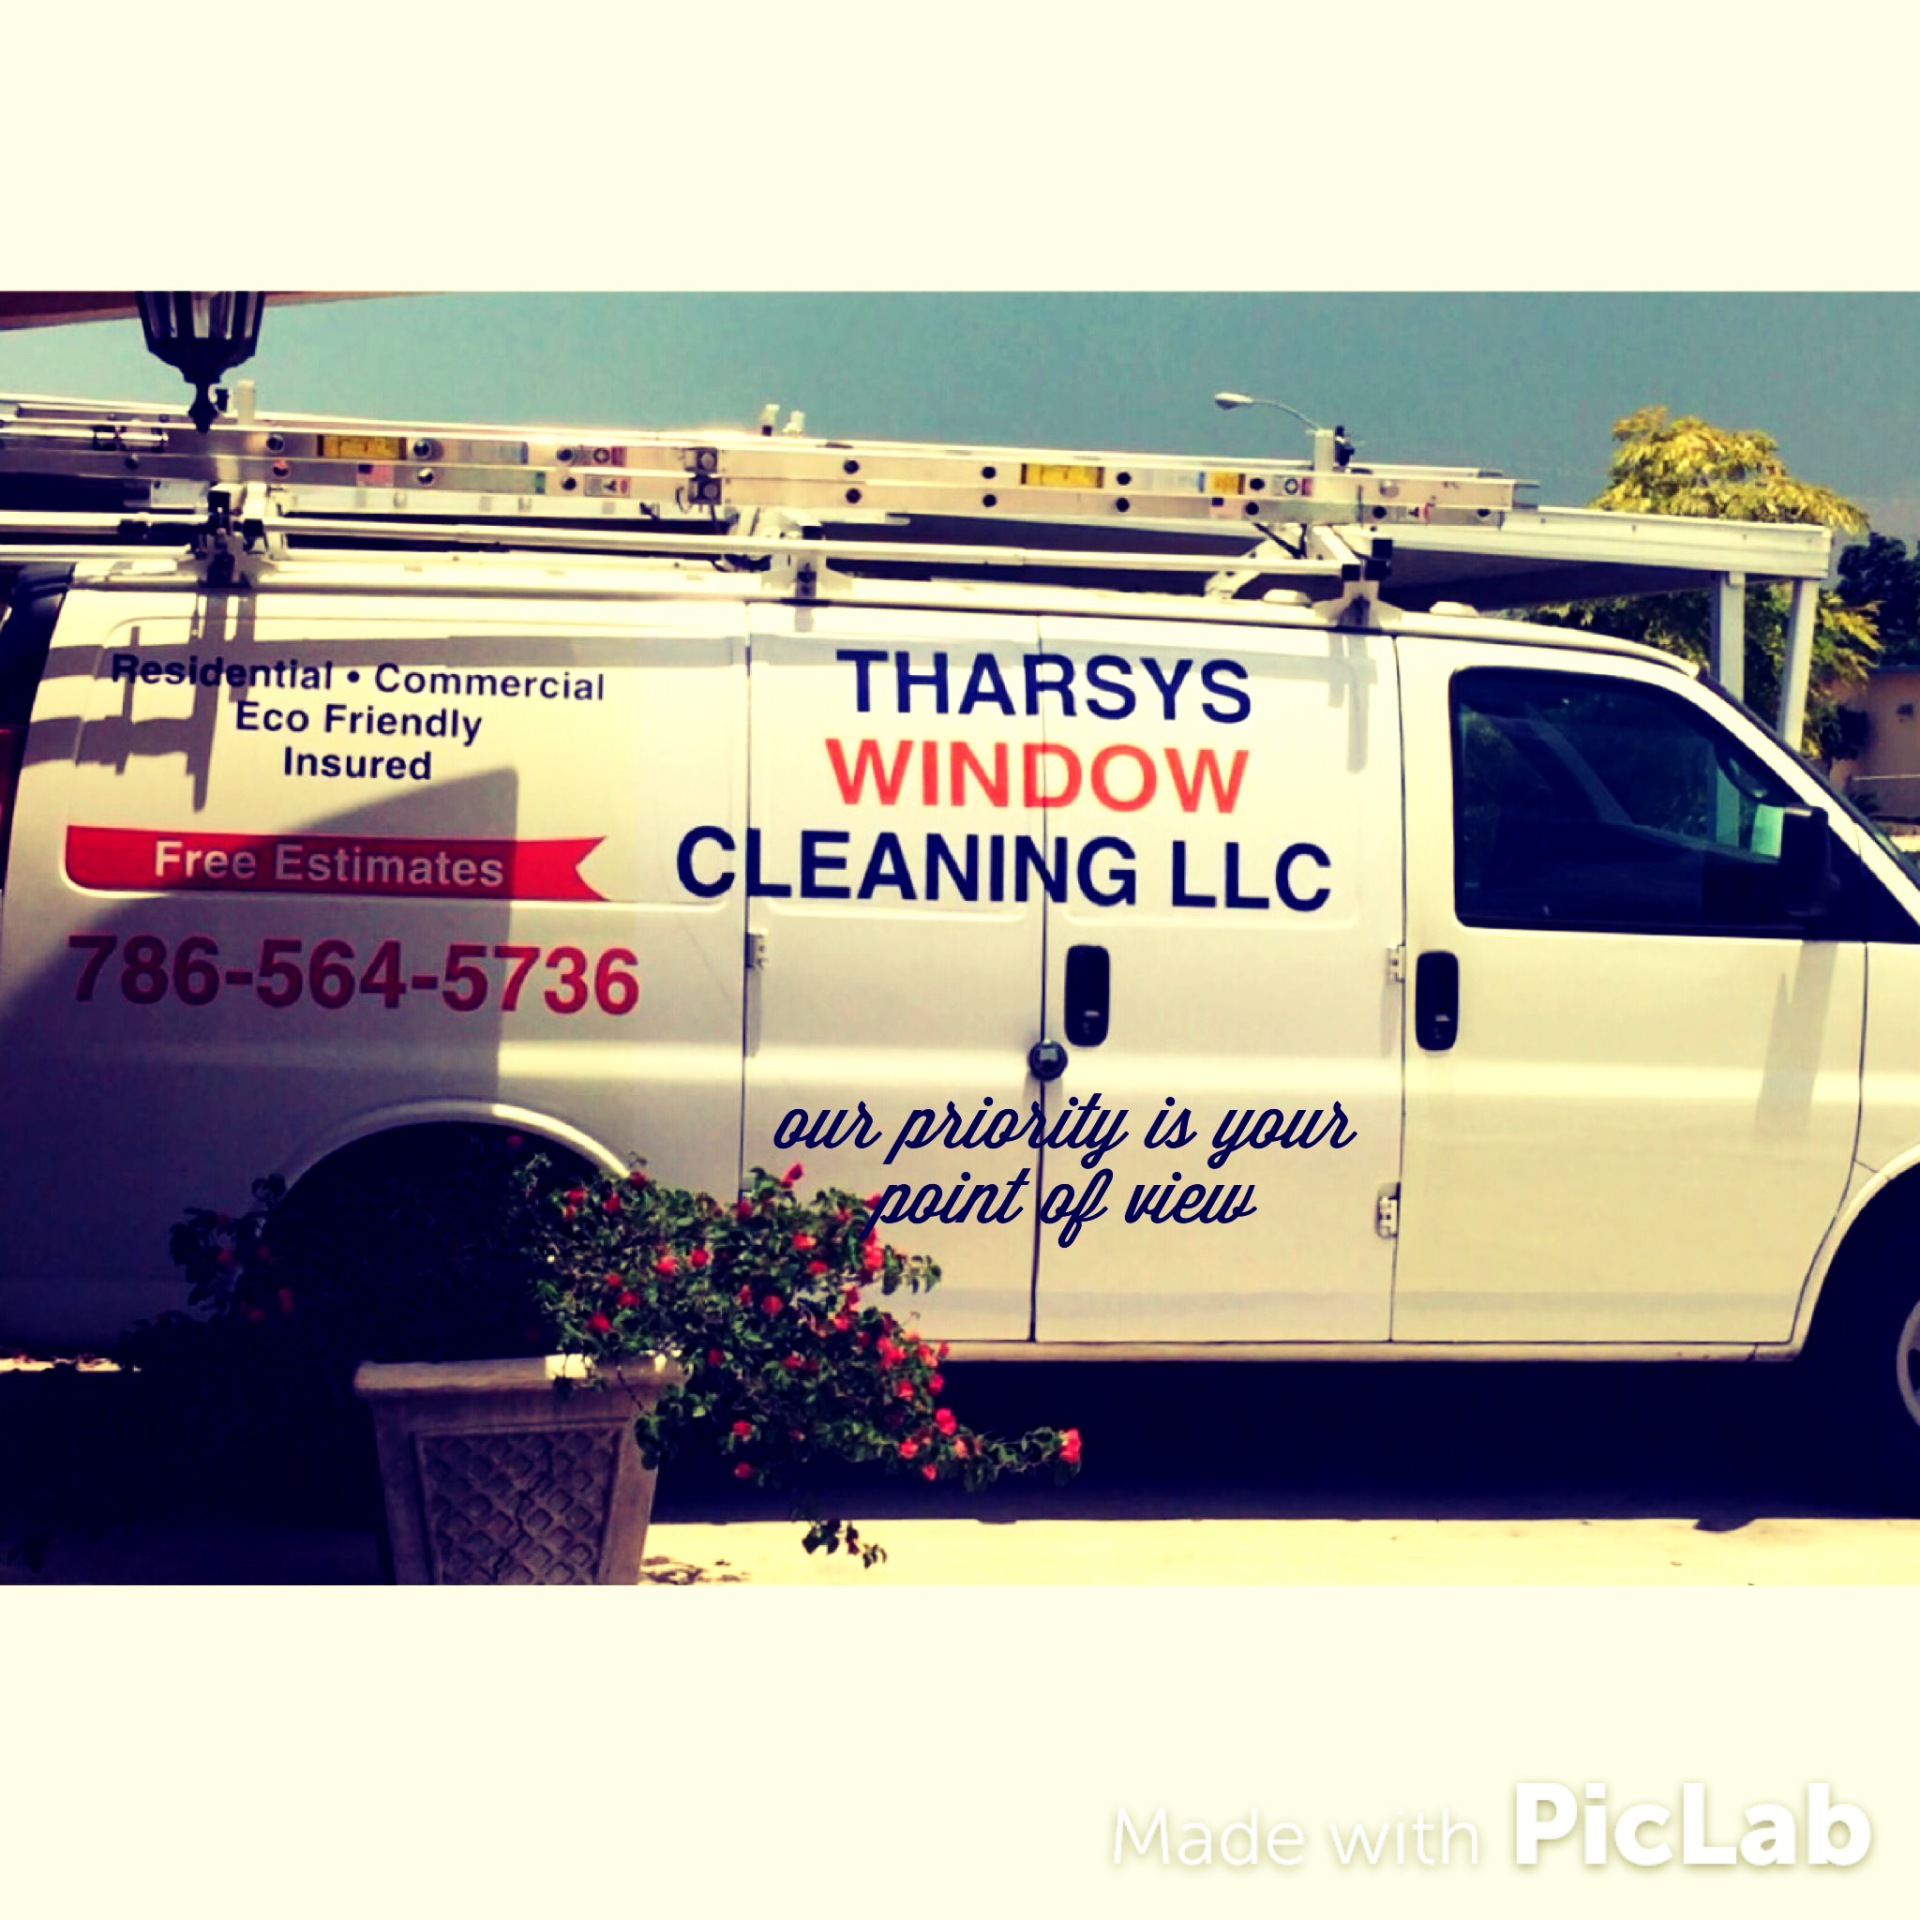 Tharsys WIndow Cleaning LLC